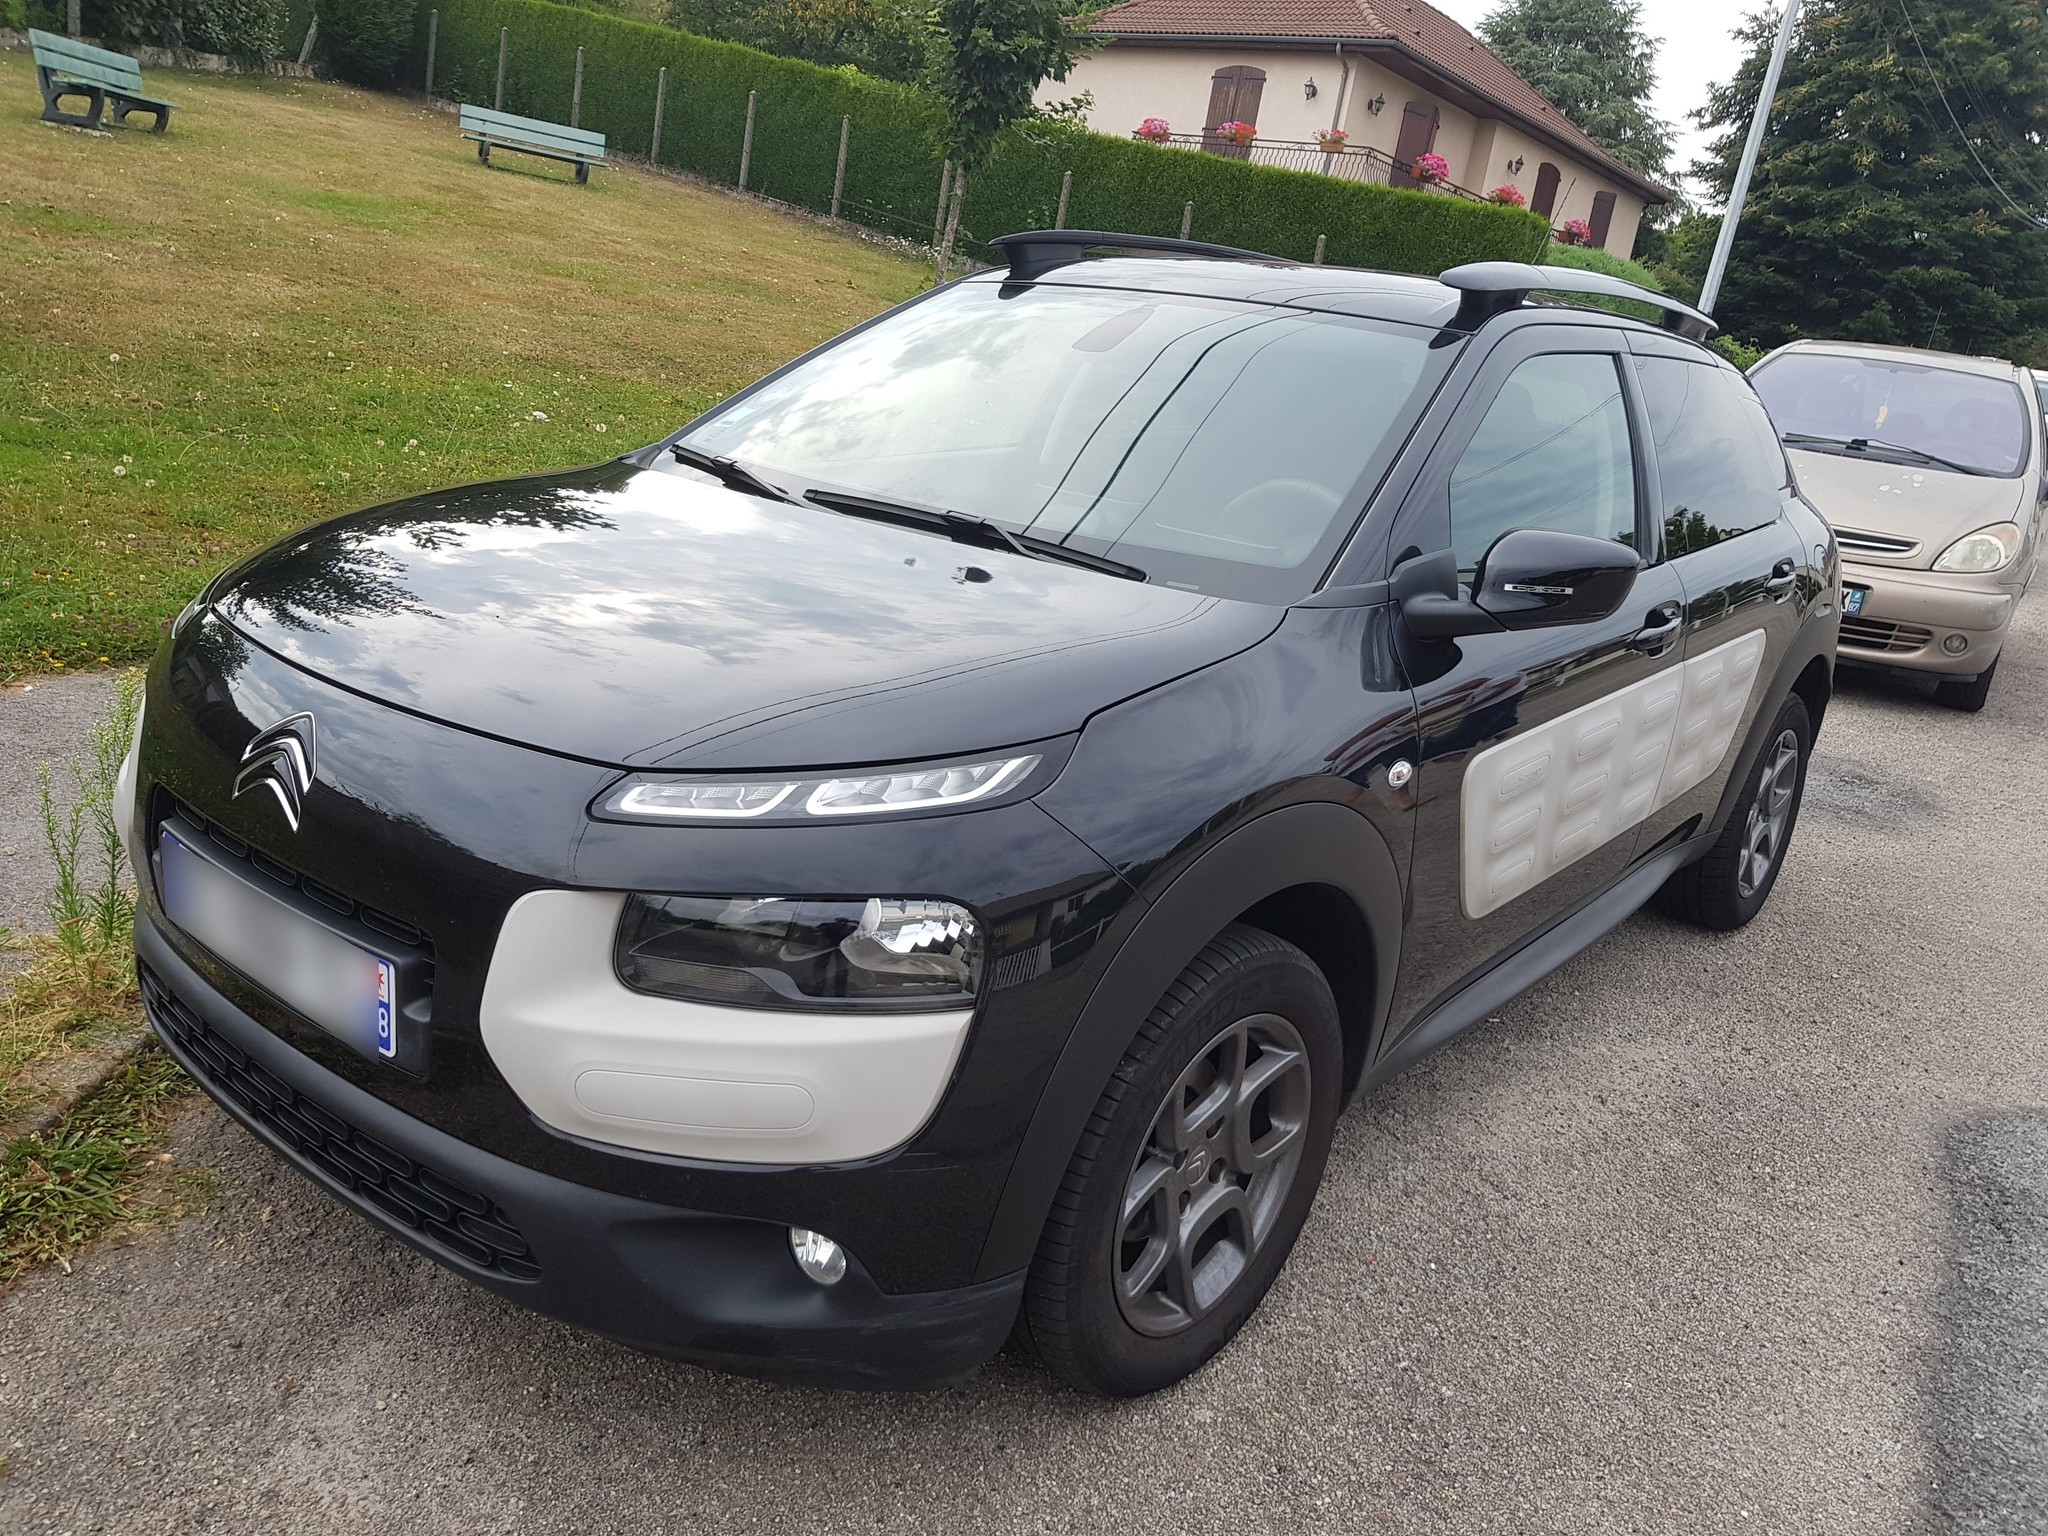 citroen c4 cactus 1 2 puretech 80 shine edition etg bva start stop carventura. Black Bedroom Furniture Sets. Home Design Ideas